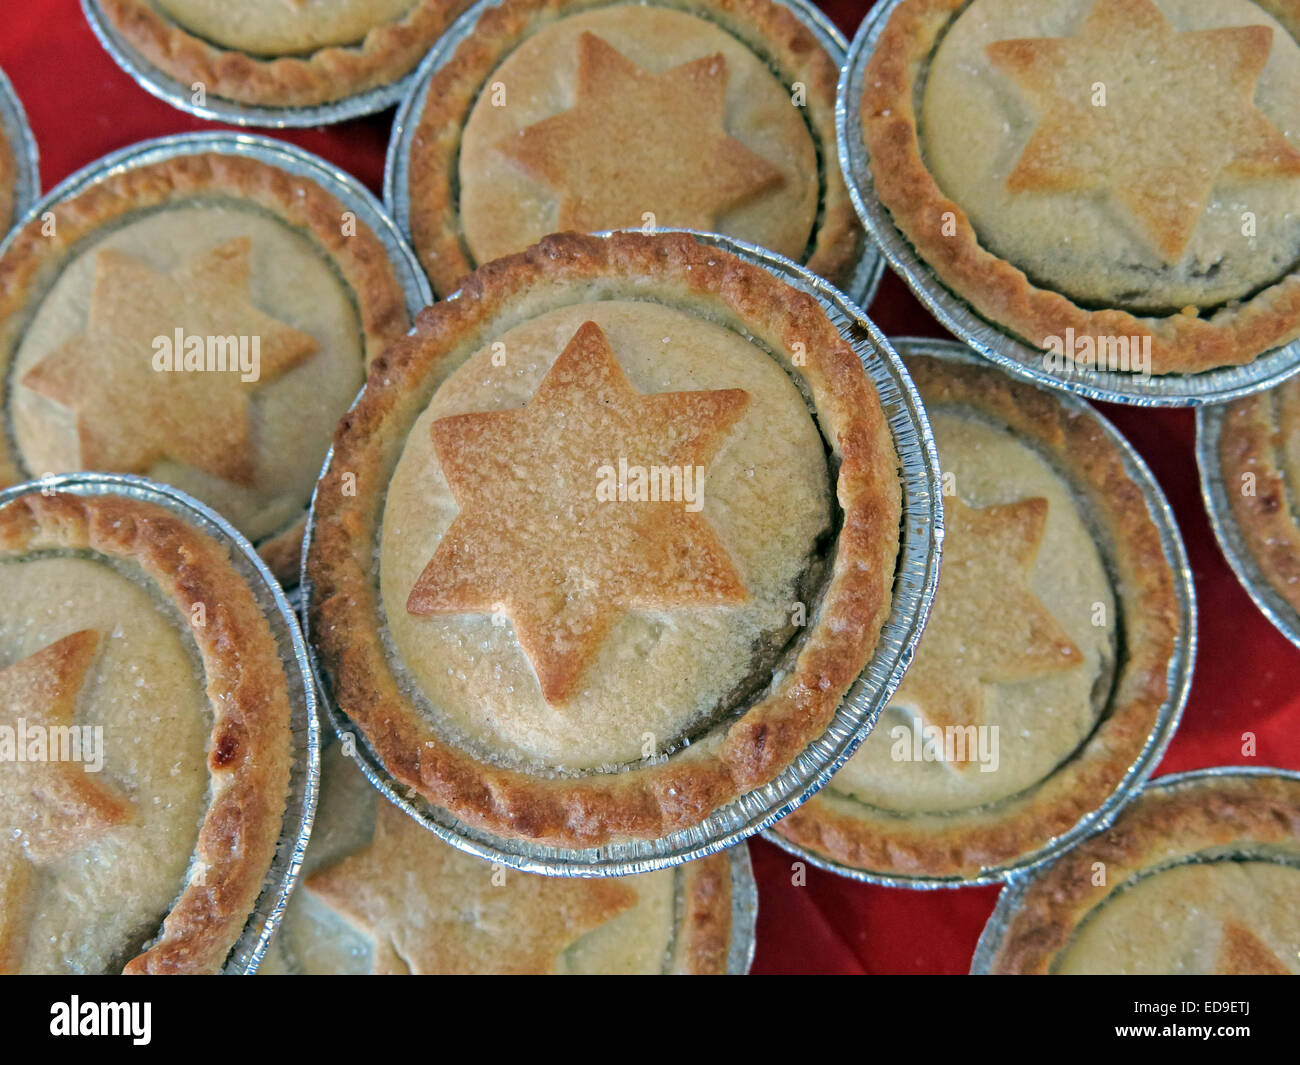 Jewish,symbol,Jew,Judaism,in,tin,aluminum,cup,MrKipling,Mr,Kipling,Christmas,tasty,treat,sugar,desert,festive,food,confectionery,at,Xmas,on,a,red,table,fat,fatty,British,fruit-based,mincemeat,season,European,crusaders,mutton,shrid,pie,English,cinnamon,cloves and nutmeg catholic,GoTonySmith,Buy Pictures of,Buy Images Of